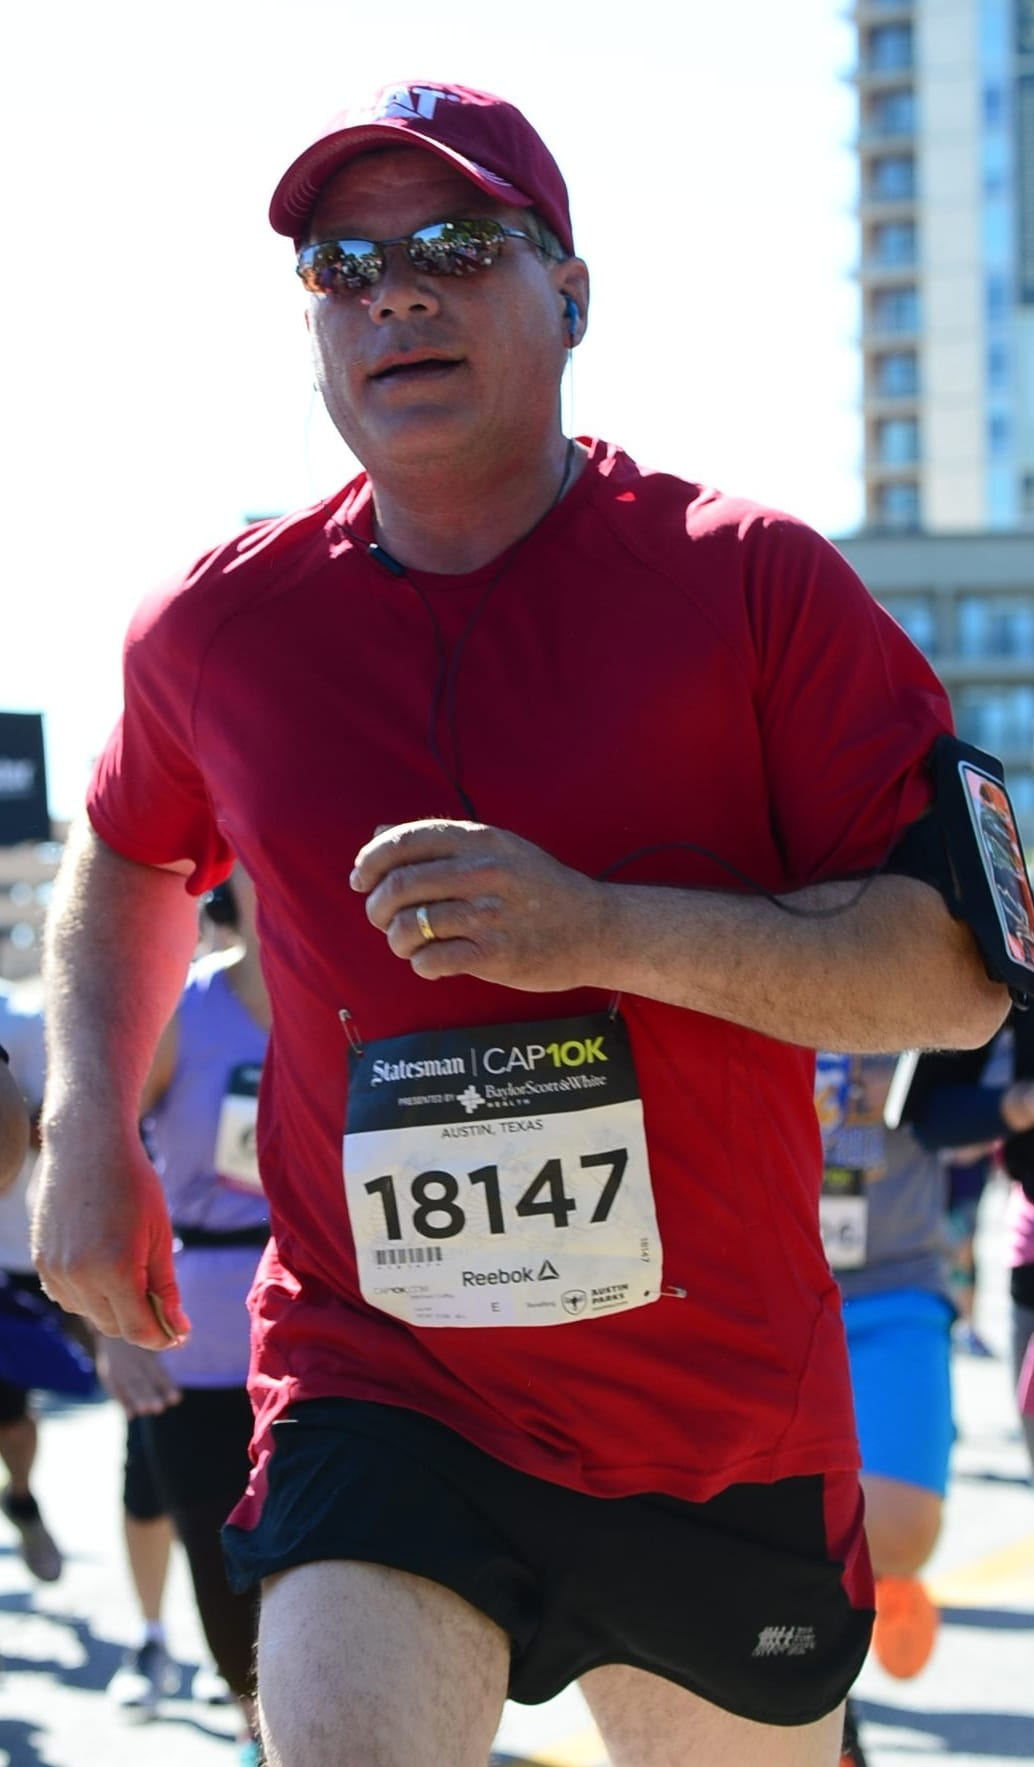 Michael ran the 2017 Cap10K after he accepted his self-imposed challenge.